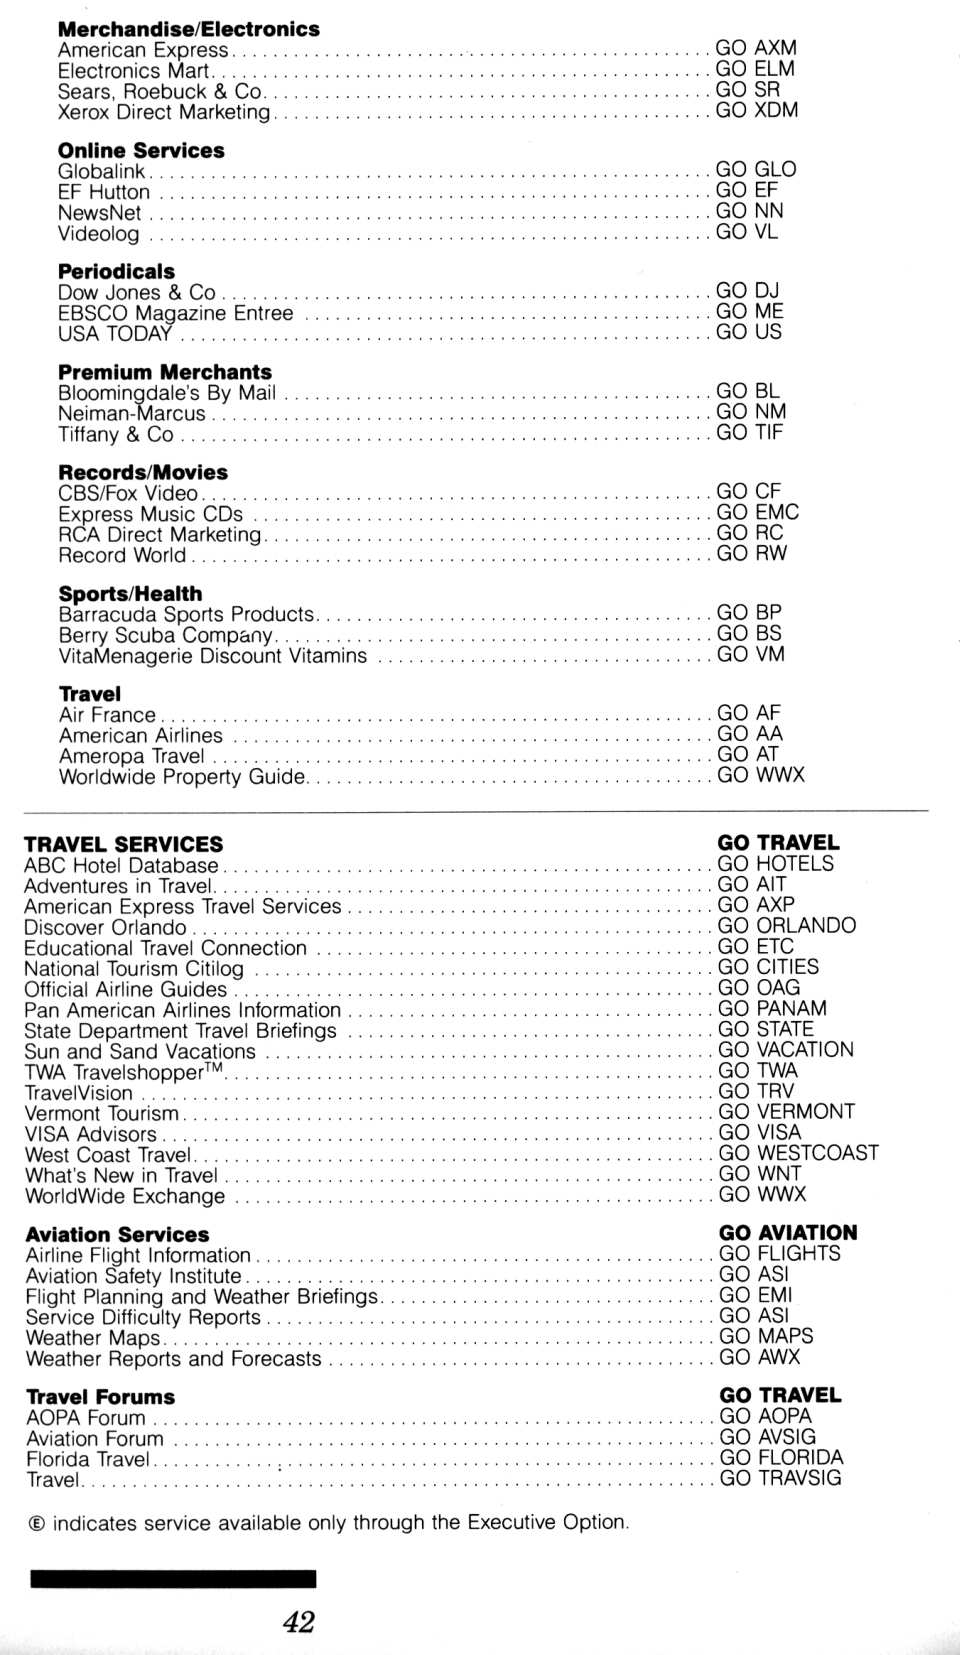 [CompuServe IntroPak page 42/44  Information Service Highlights (6/6)]